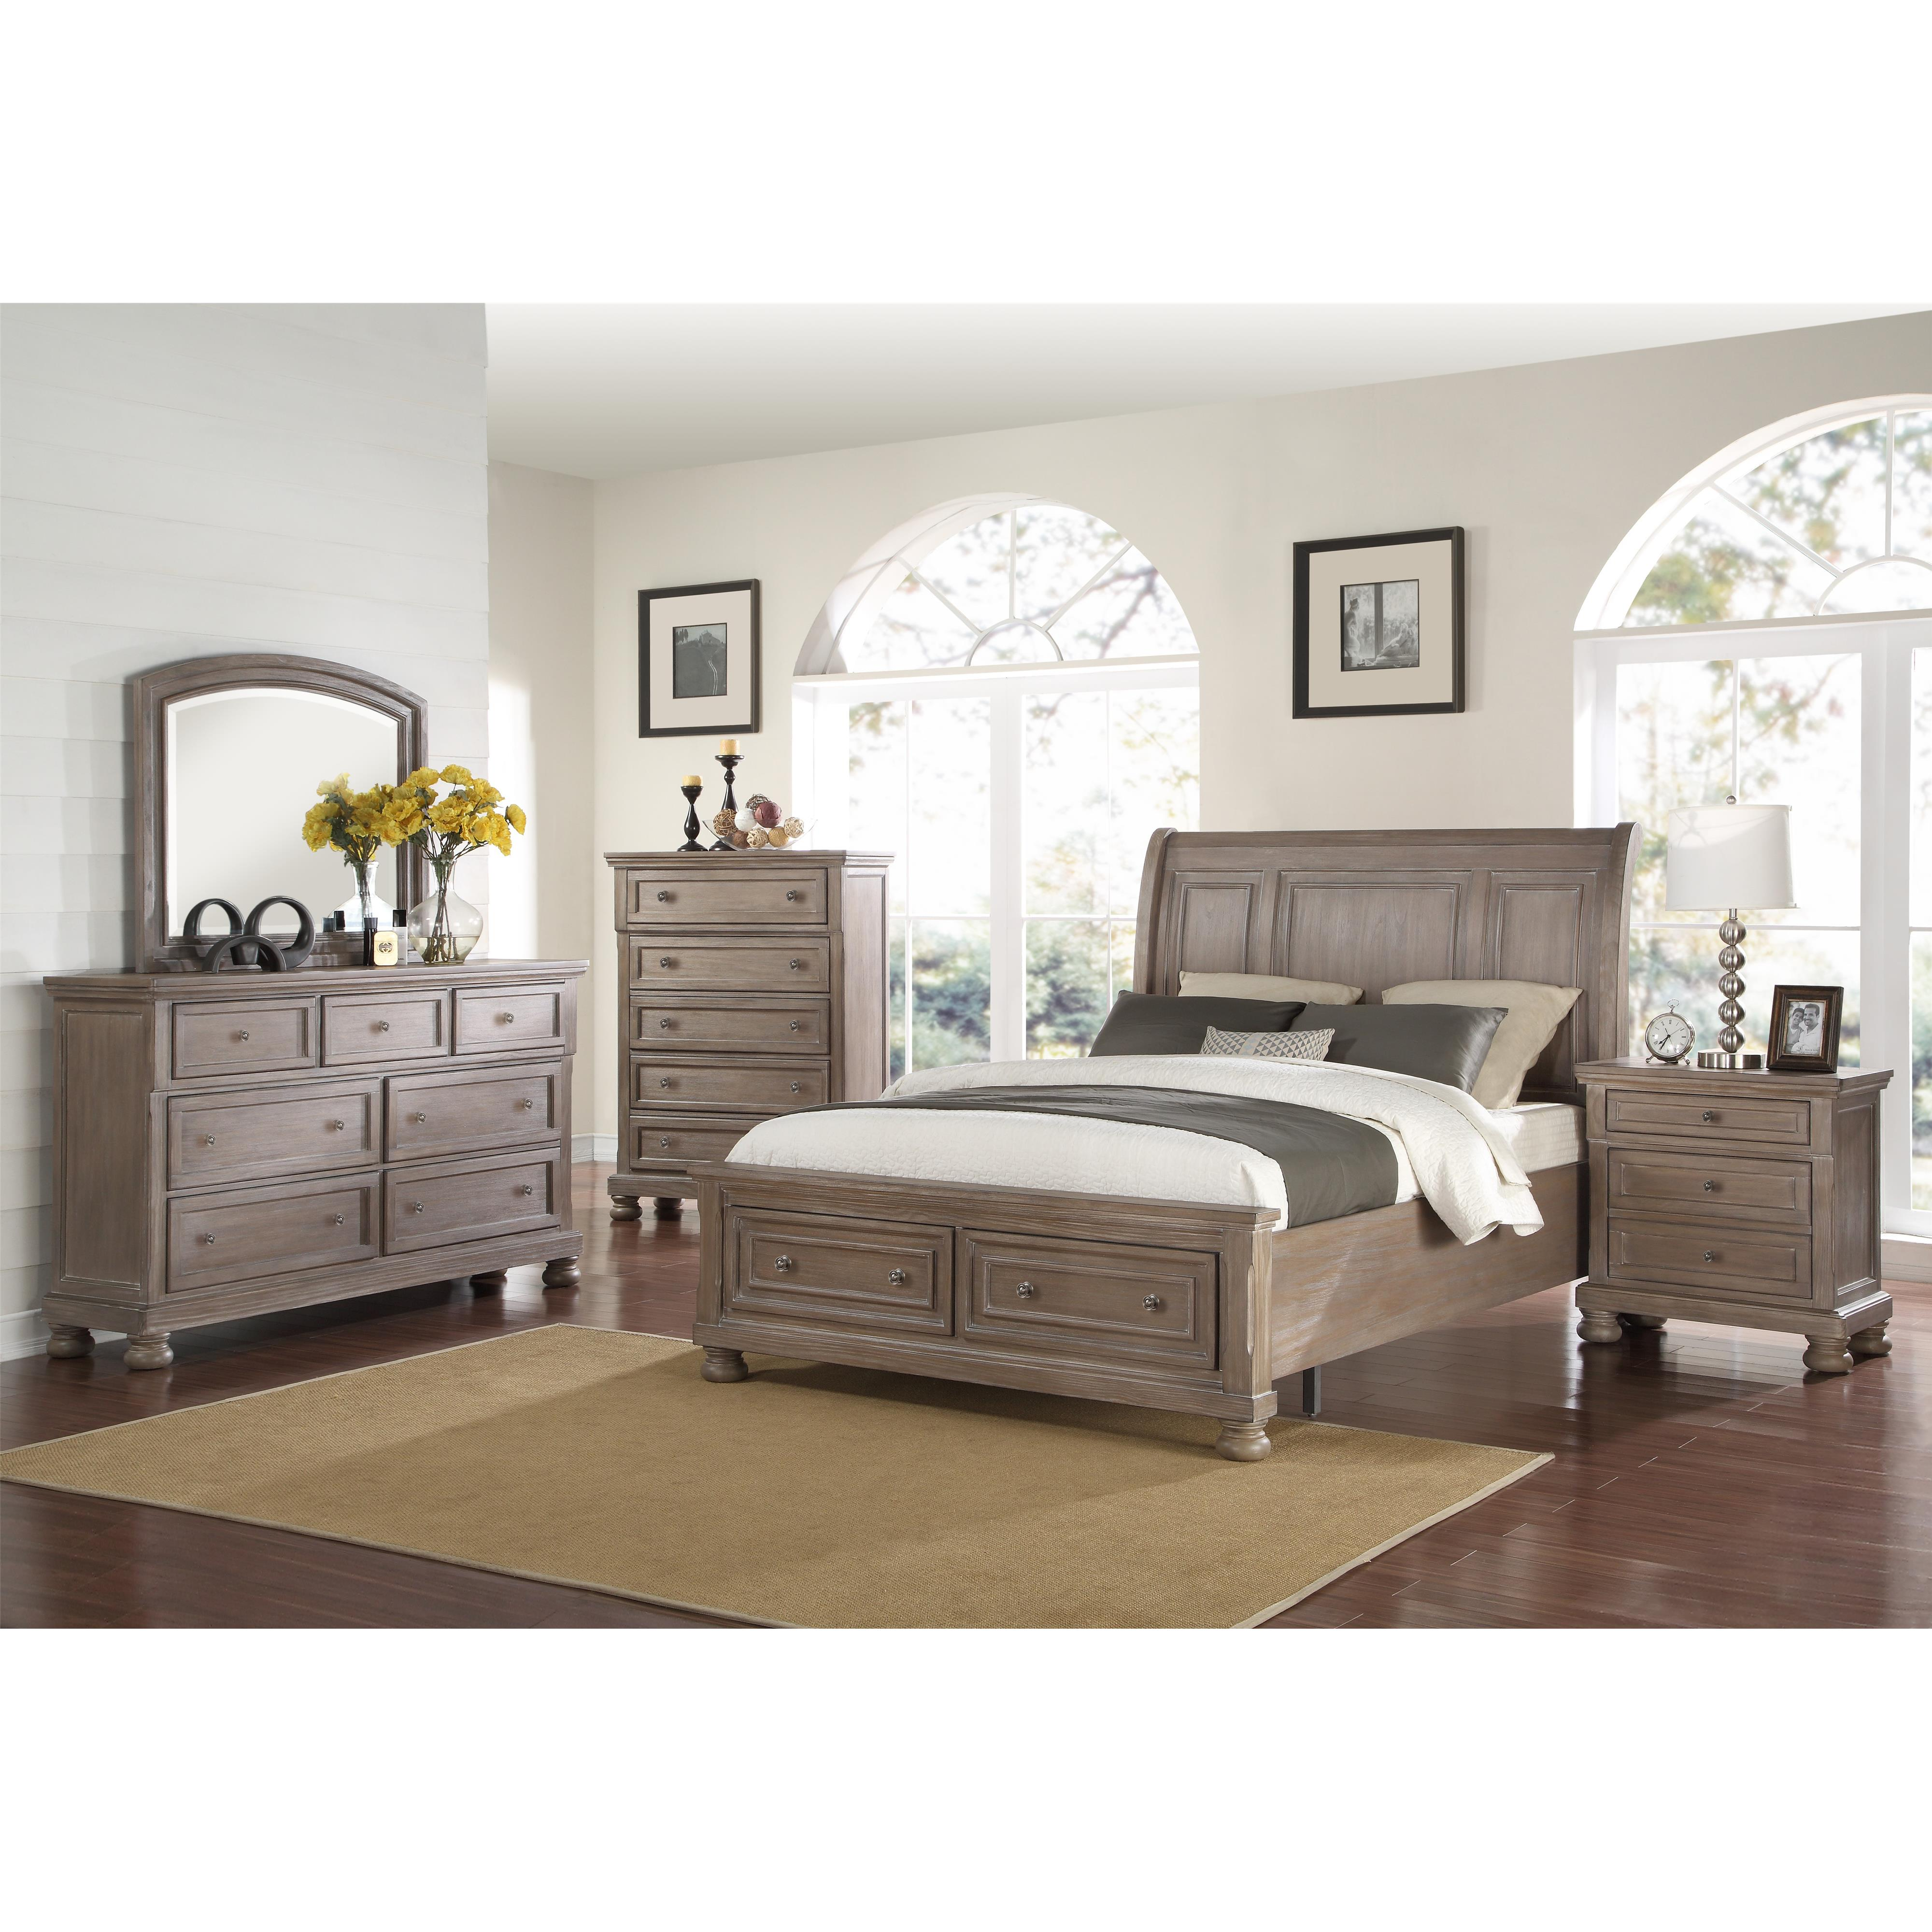 Allegra California King Bedroom Group by New Classic at Carolina Direct